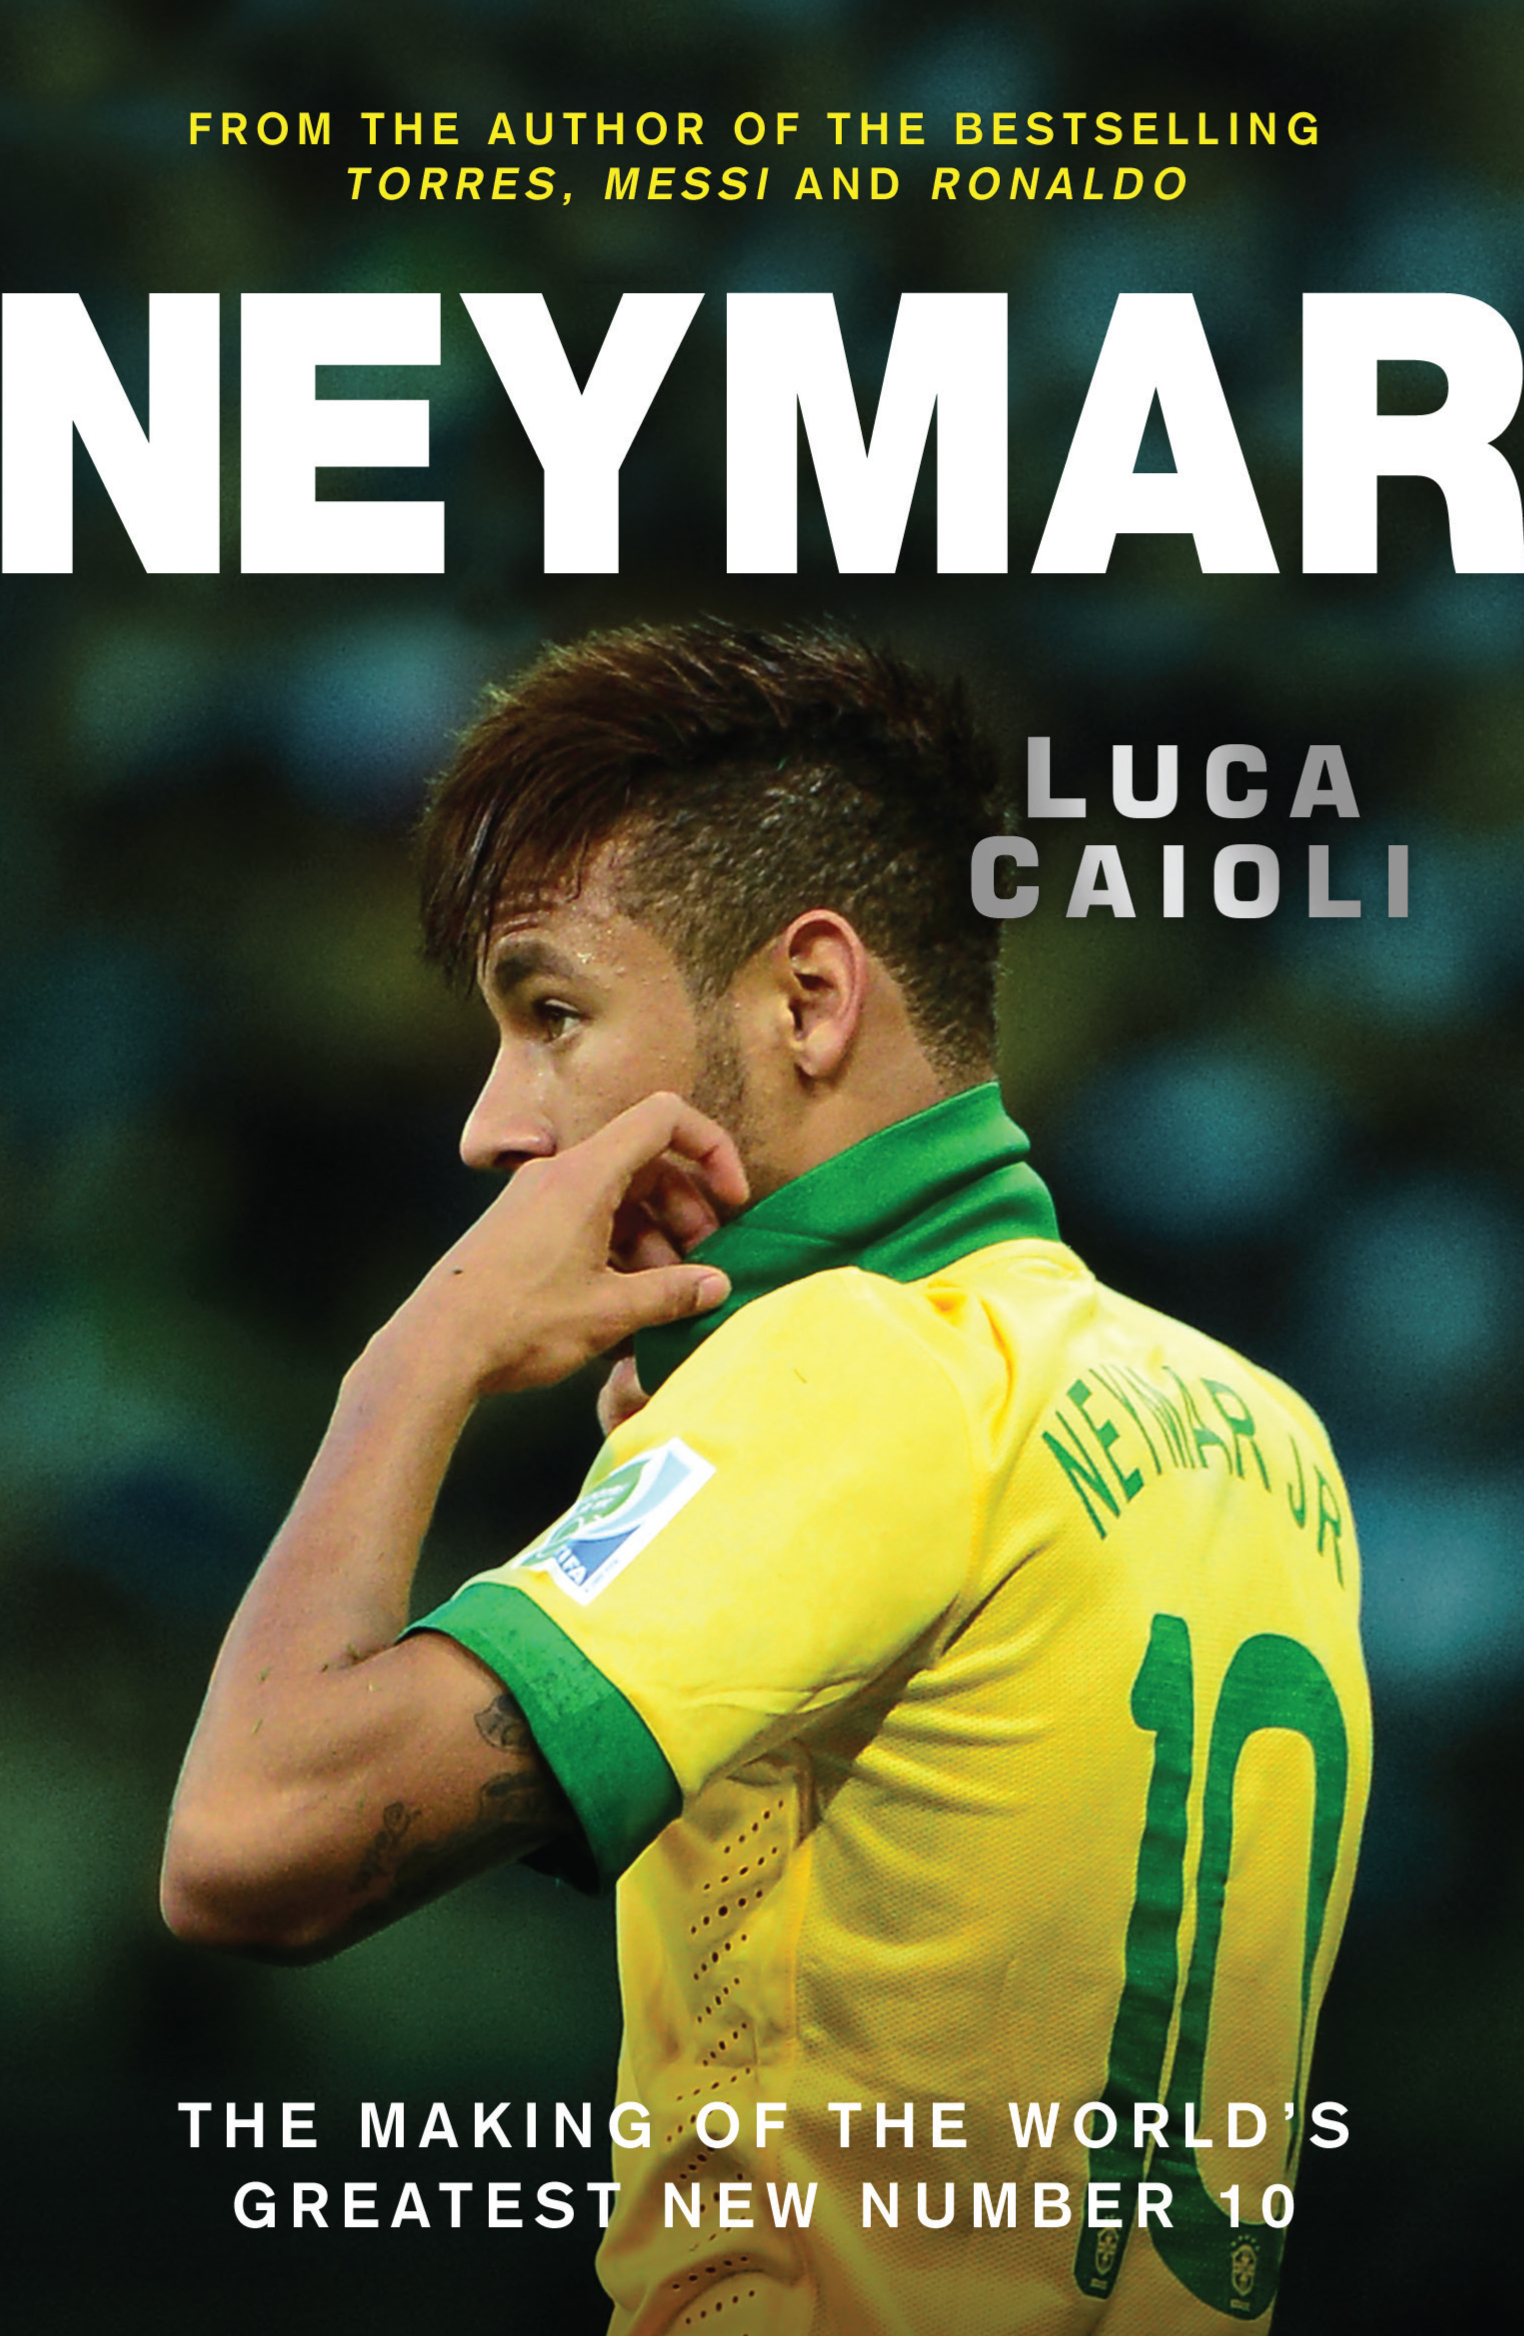 Neymar: The Making of the World?s Greatest New Number 10